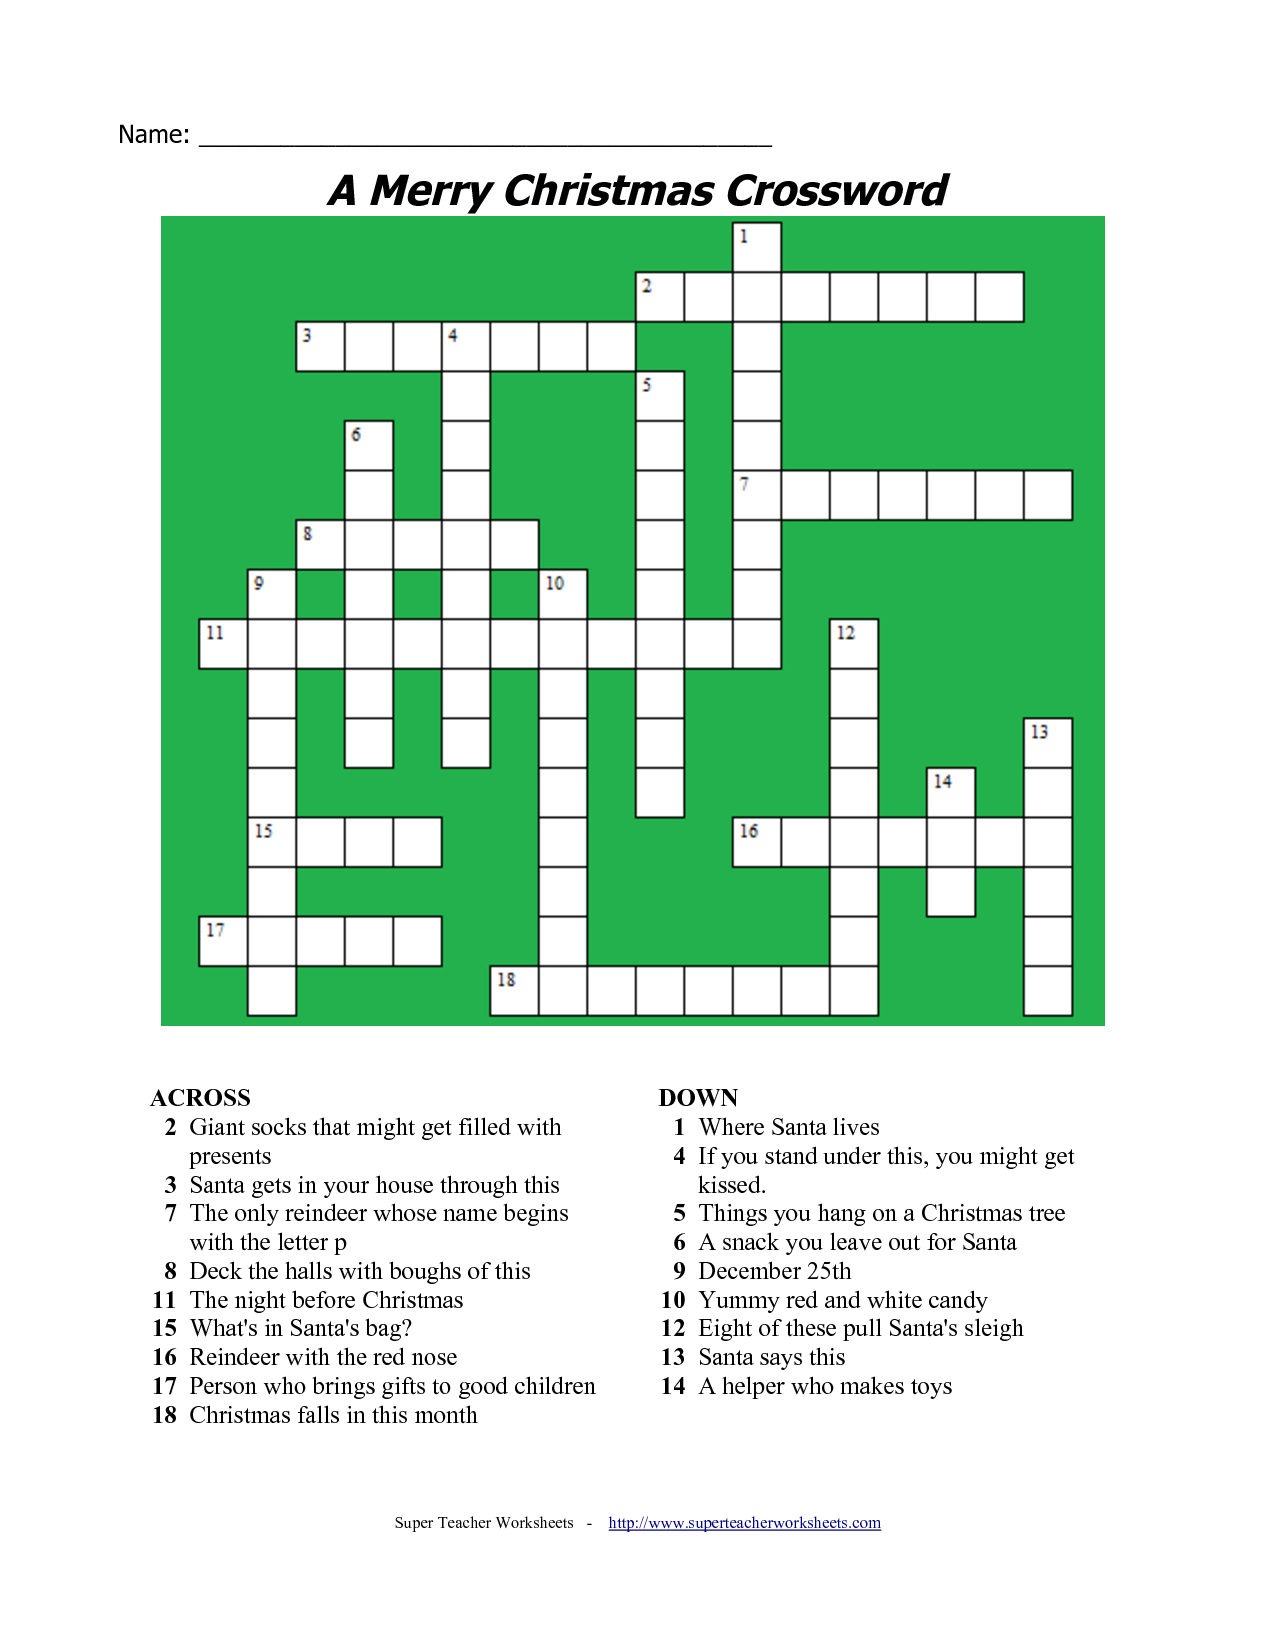 20 Fun Printable Christmas Crossword Puzzles   Kittybabylove - Free Printable Christmas Crossword Puzzles For Adults